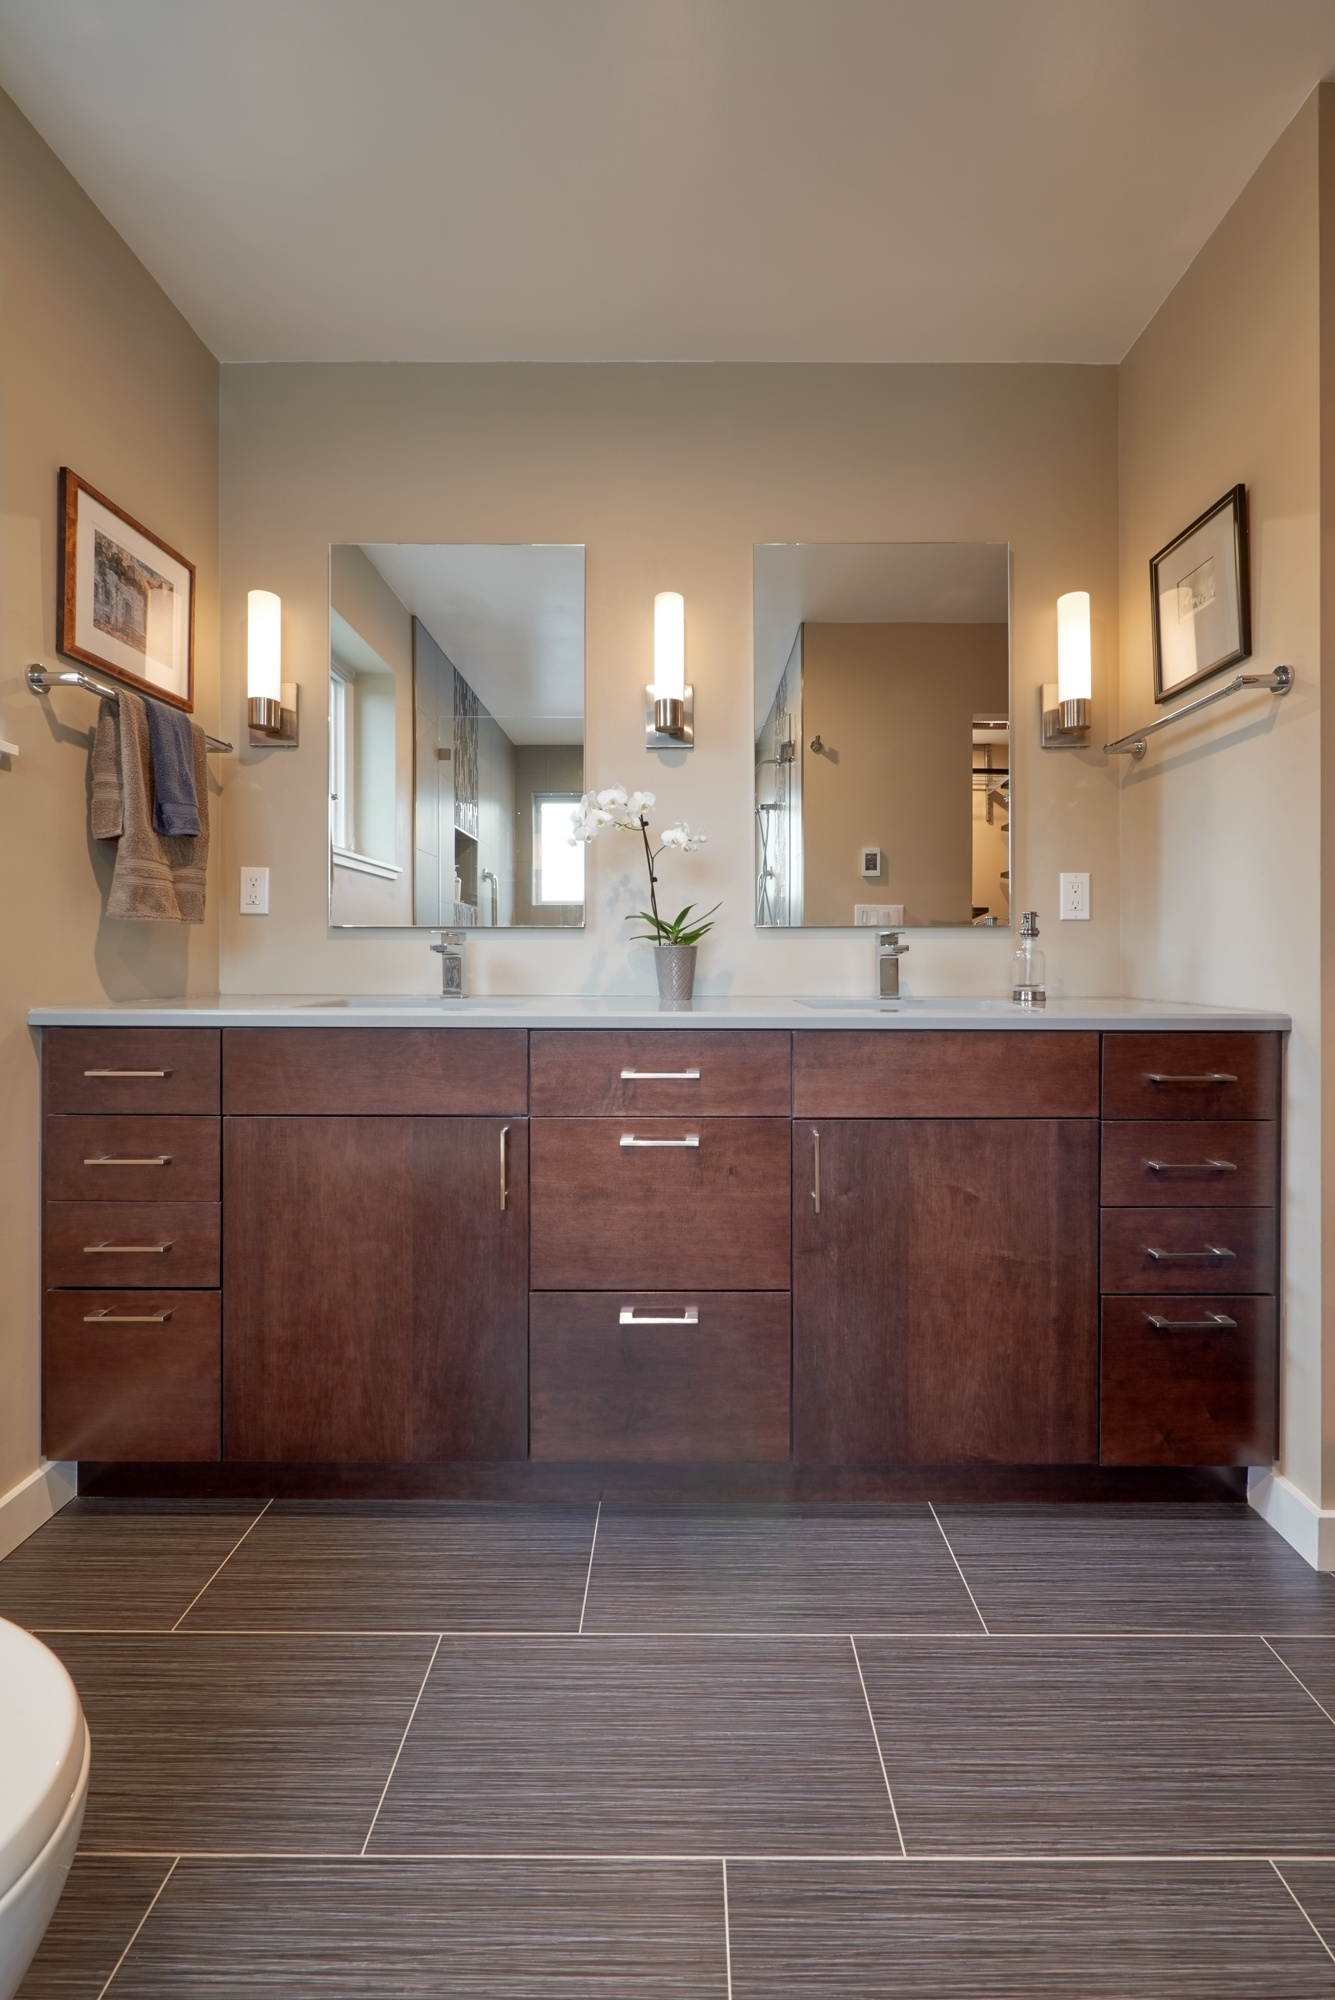 Why Bathroom Remodeling How To Set Bathroom Remodeling: Why Is Bathroom Remodeling So Expensive?